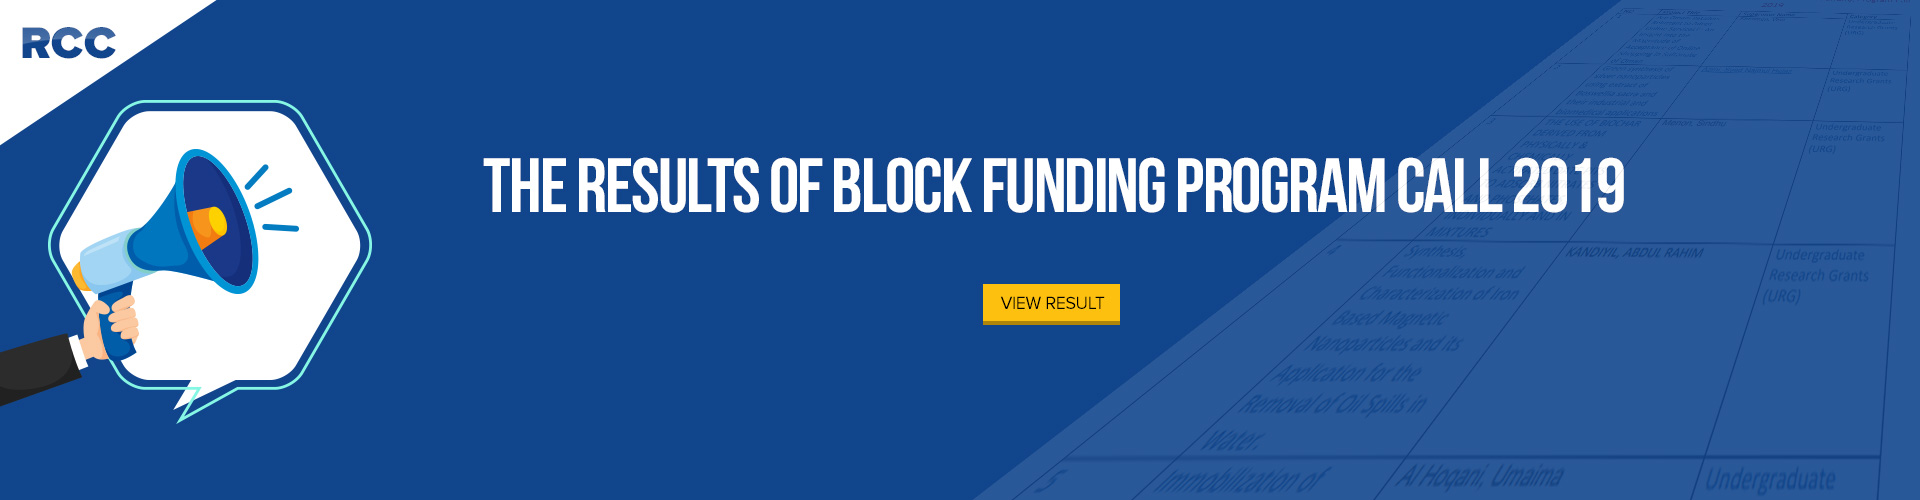 The Results of Block Funding Program Call 2019